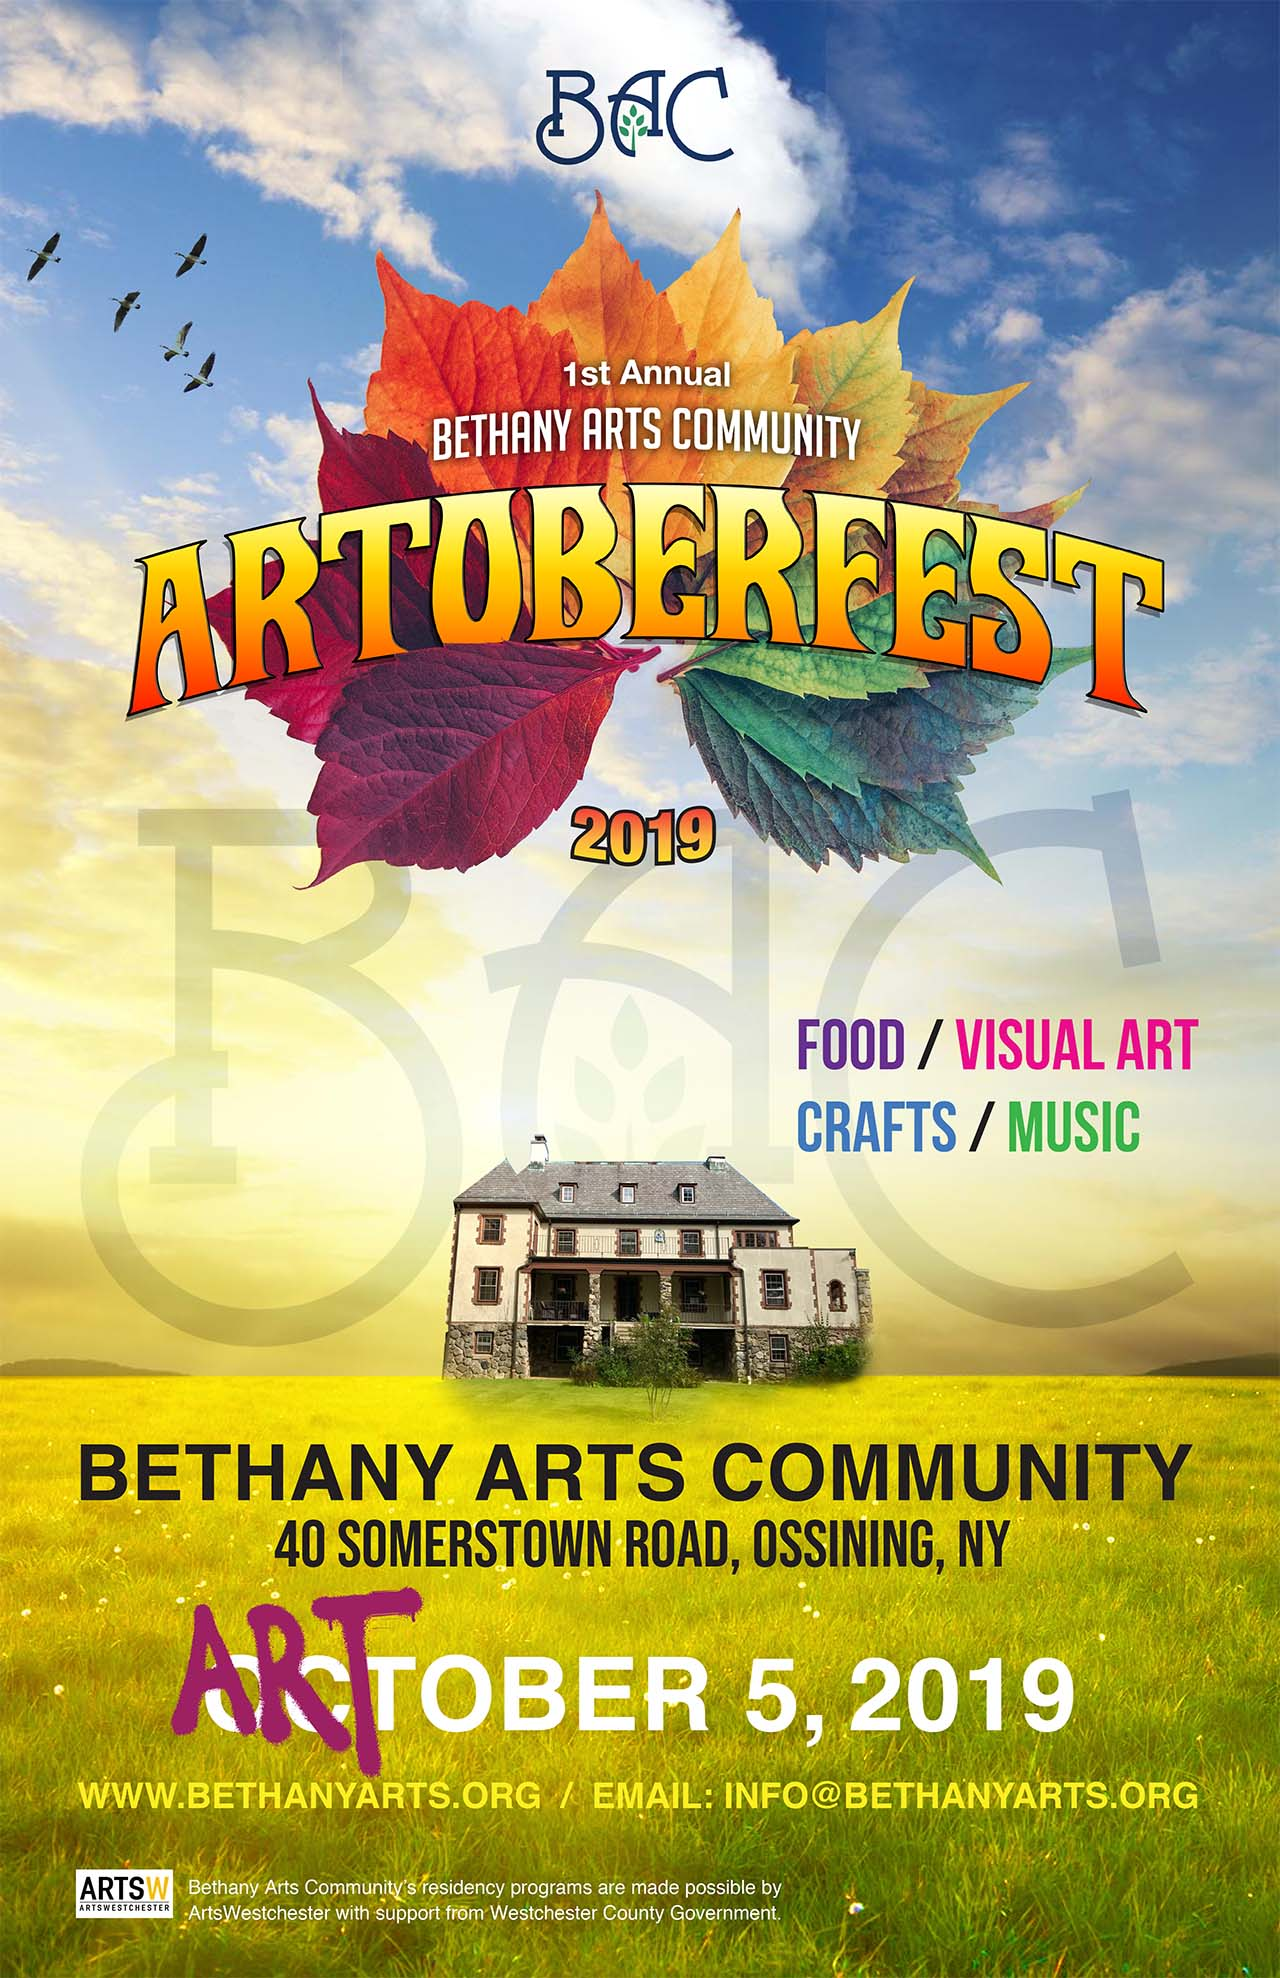 Artoberfest 2019 at Bethany Arts Community